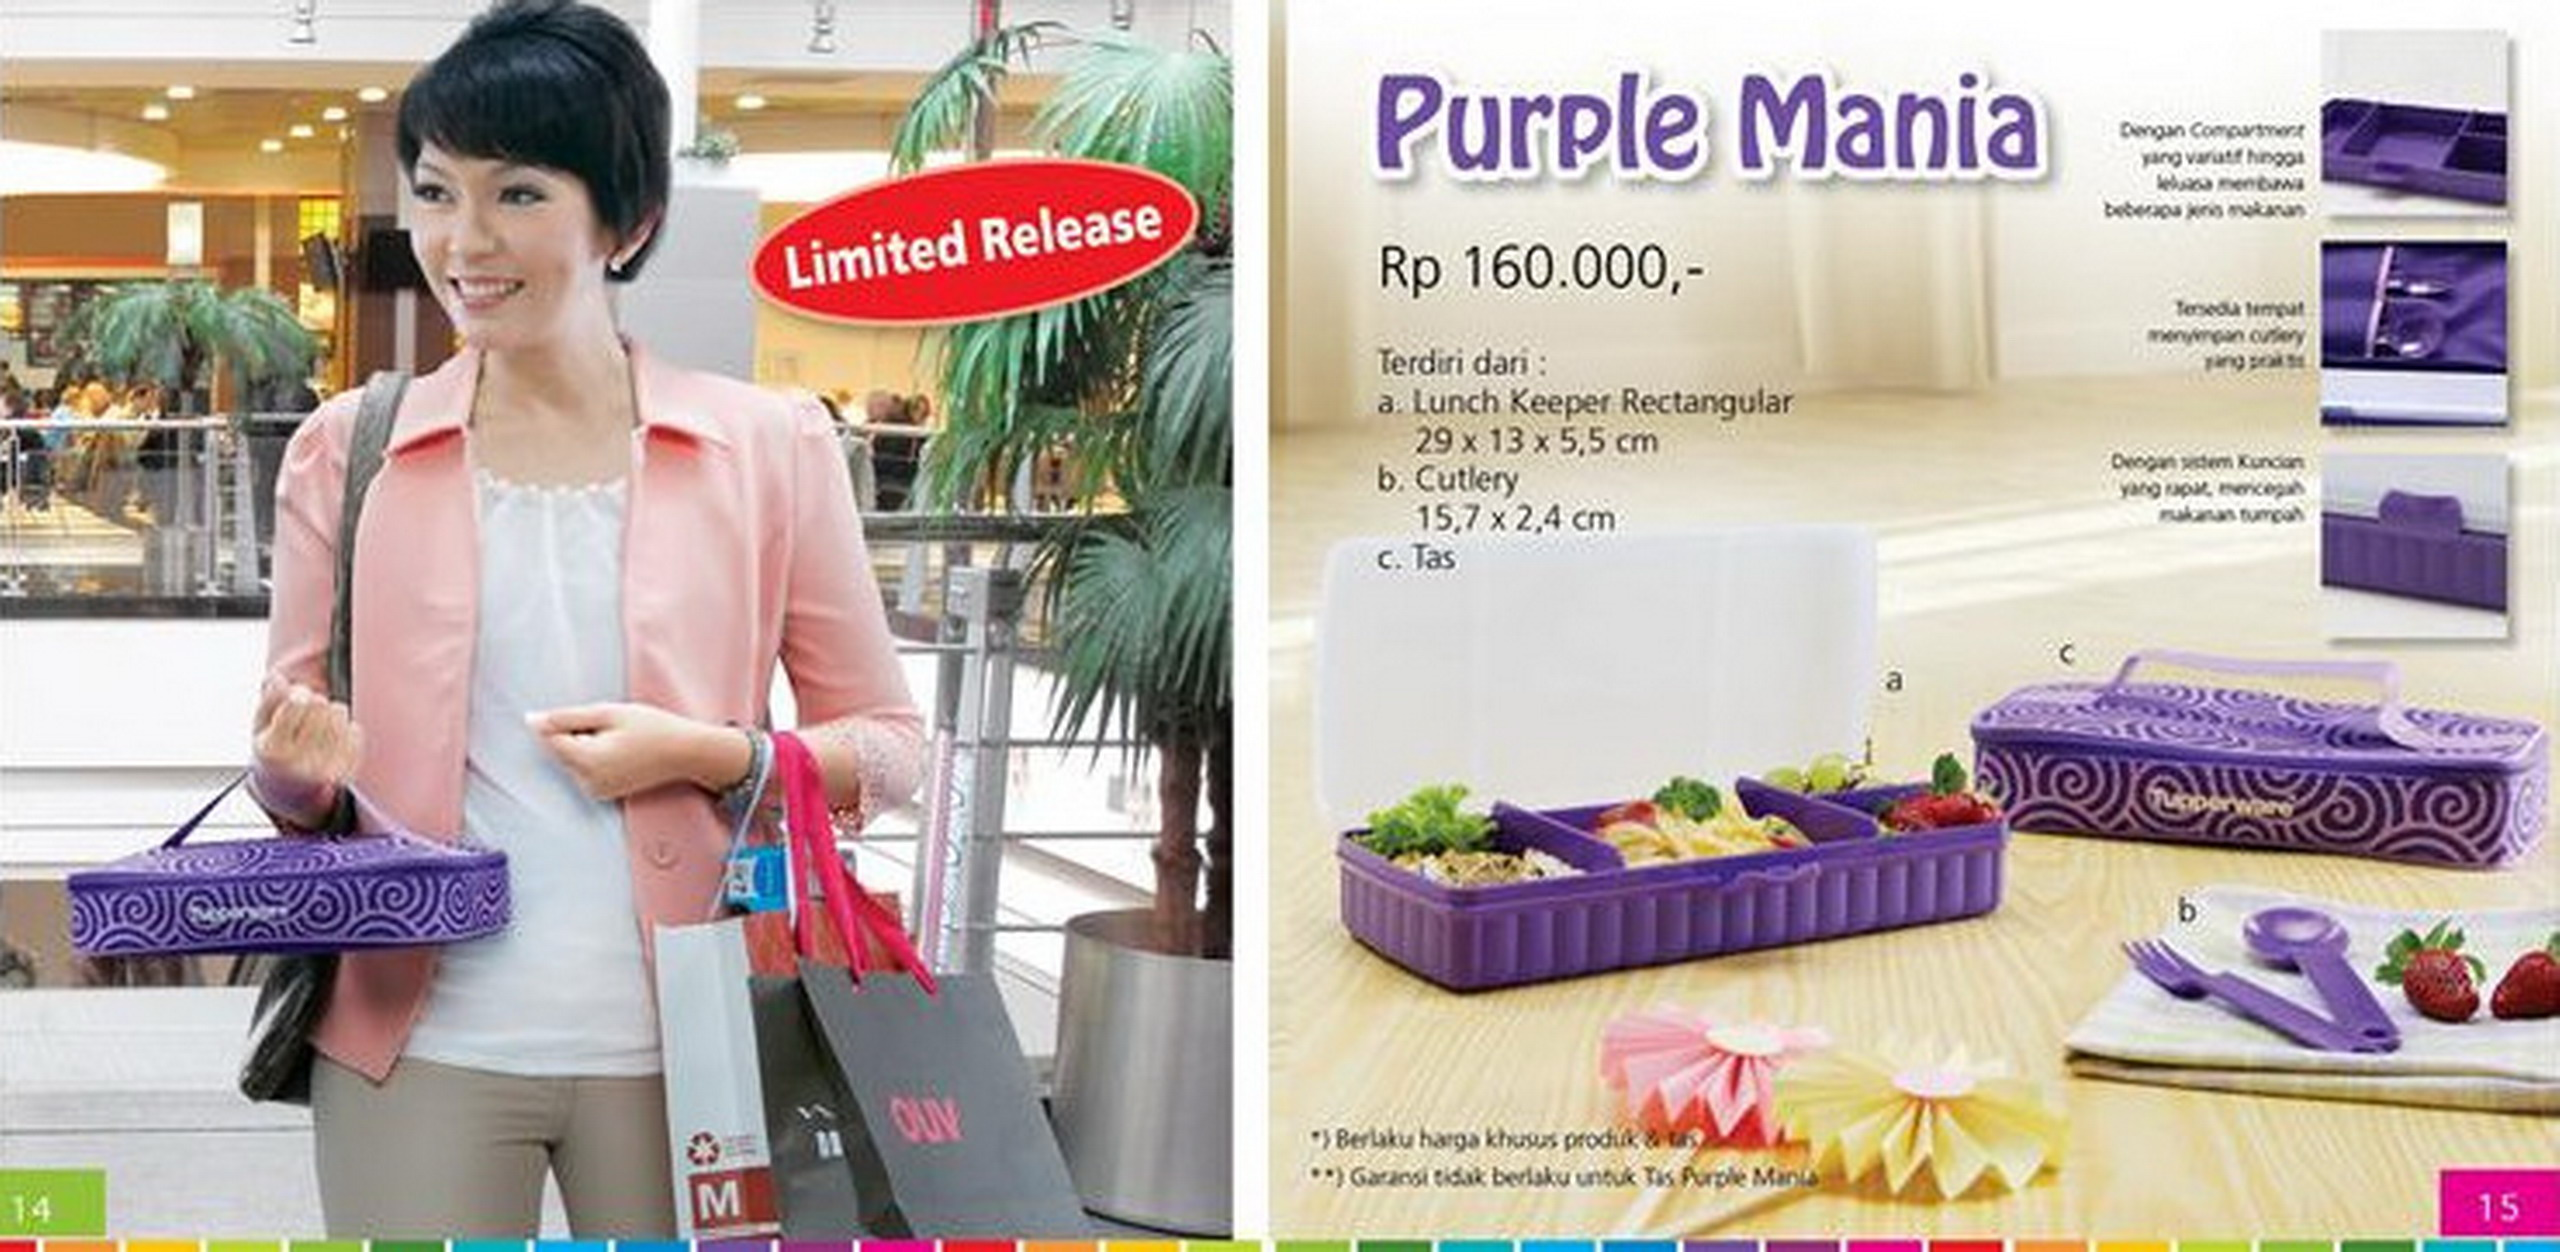 http://freetupperware.files.wordpress.com/2013/08/tupperware-purple-mania.jpg